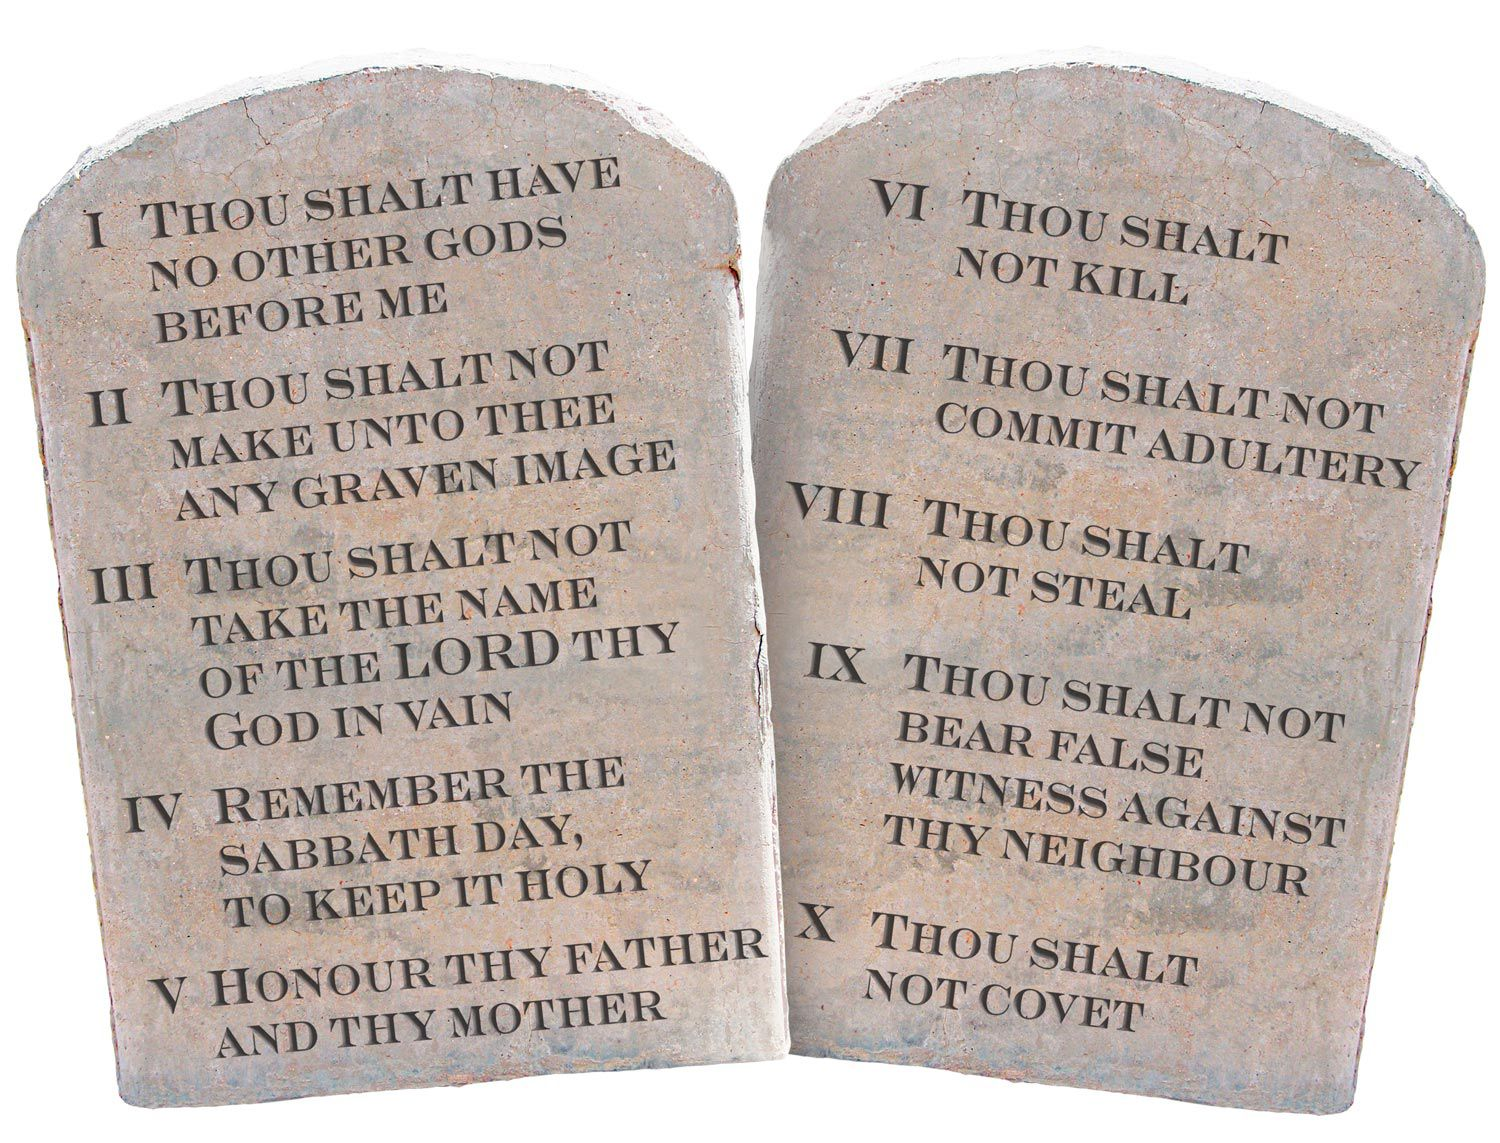 the ten commandments essay The ten commandments (exodus 20: 1-14), pronounced there by the lord god to the assembled and recently liberated children of israel, constitute the most famous teaching of the book of exodus, perhaps of the entire hebrew bible.